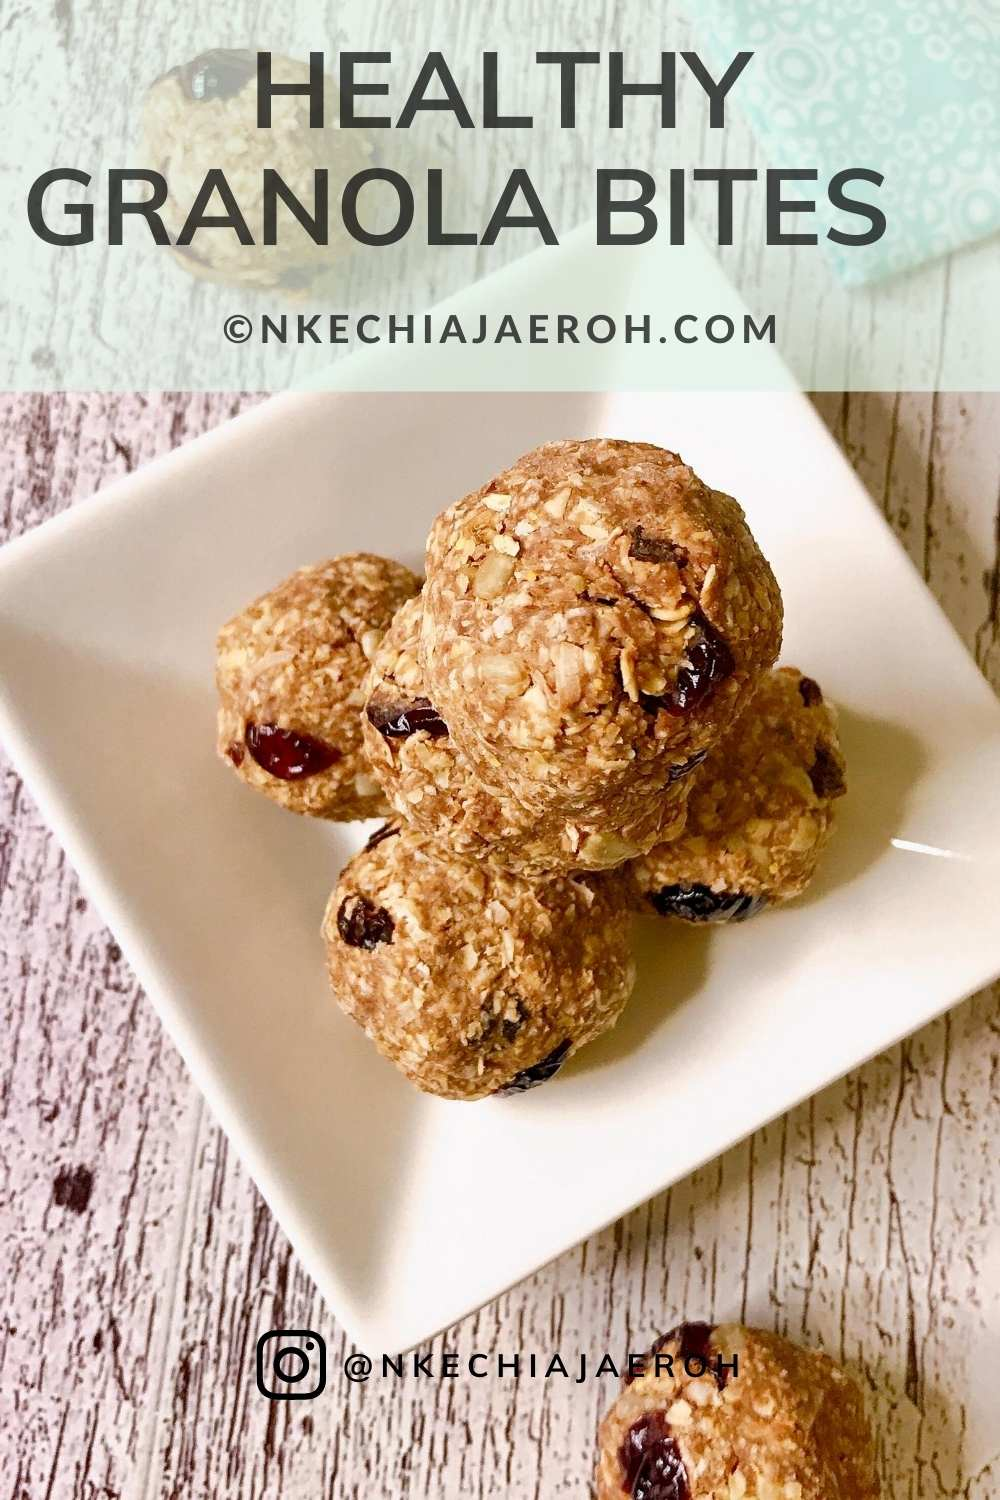 Healthy vegan energy oatmeal balls. These healthy go-to granola bites are easy to make, and they are the most delicious energy balls! Making granola is easy peasy, especially these healthy ones. To make these, you will need oats, oat flour, nuts, coconut oil, coconut flakes, dry cranberries, raisin, etc.